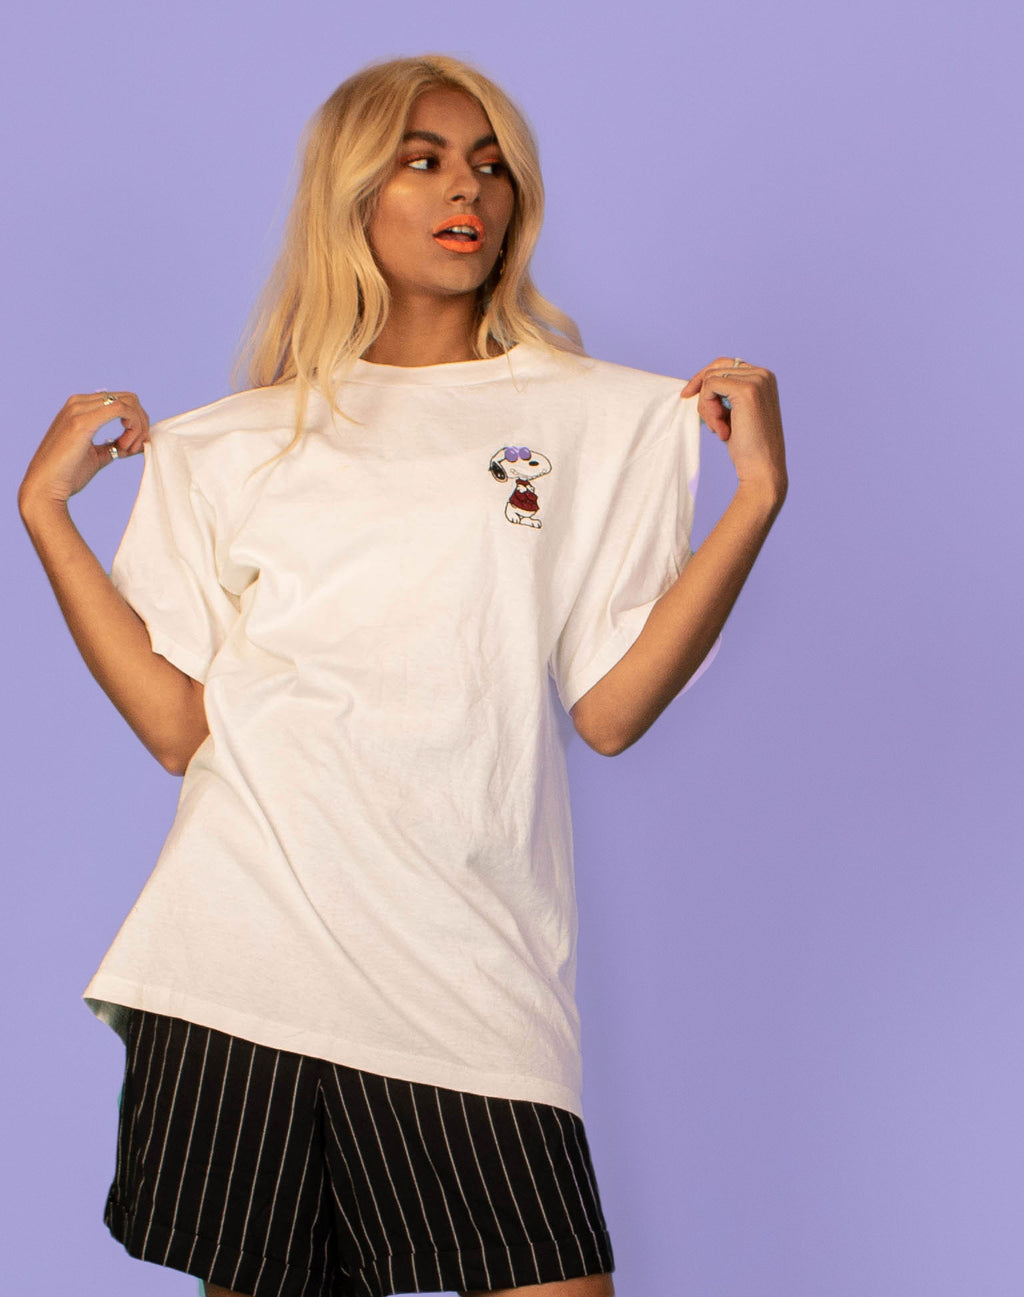 WHITE SNOOPY T-SHIRT